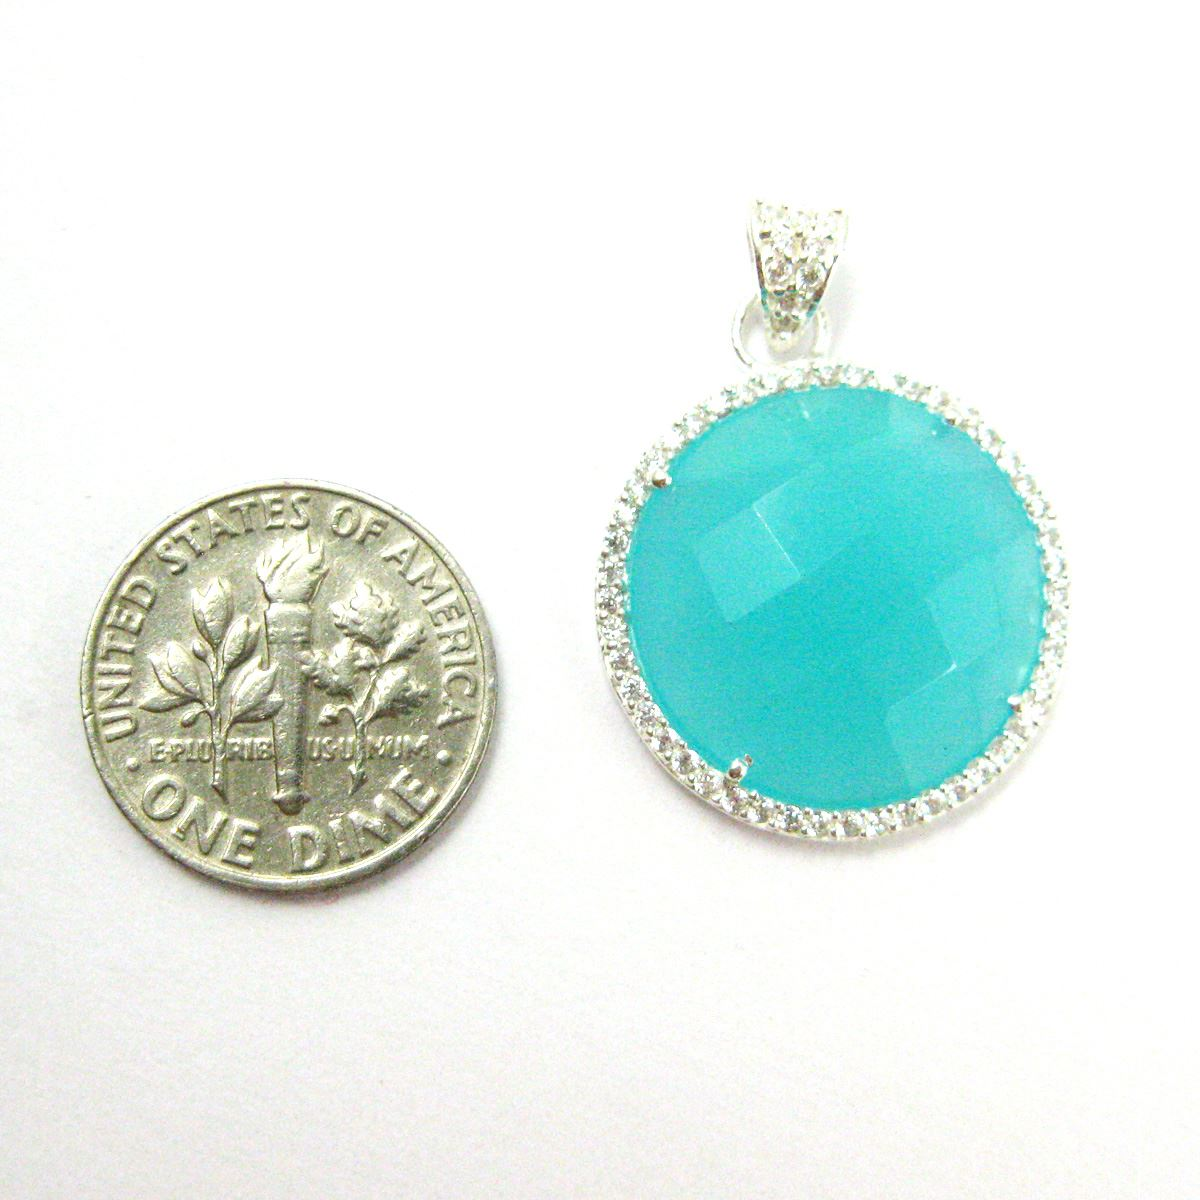 Sterling Silver Pave Bezel Gemstone Pendant - Cubic Zirconia Pave Setting -  Round Faceted Stone-Peru Chalcedony- 21mm